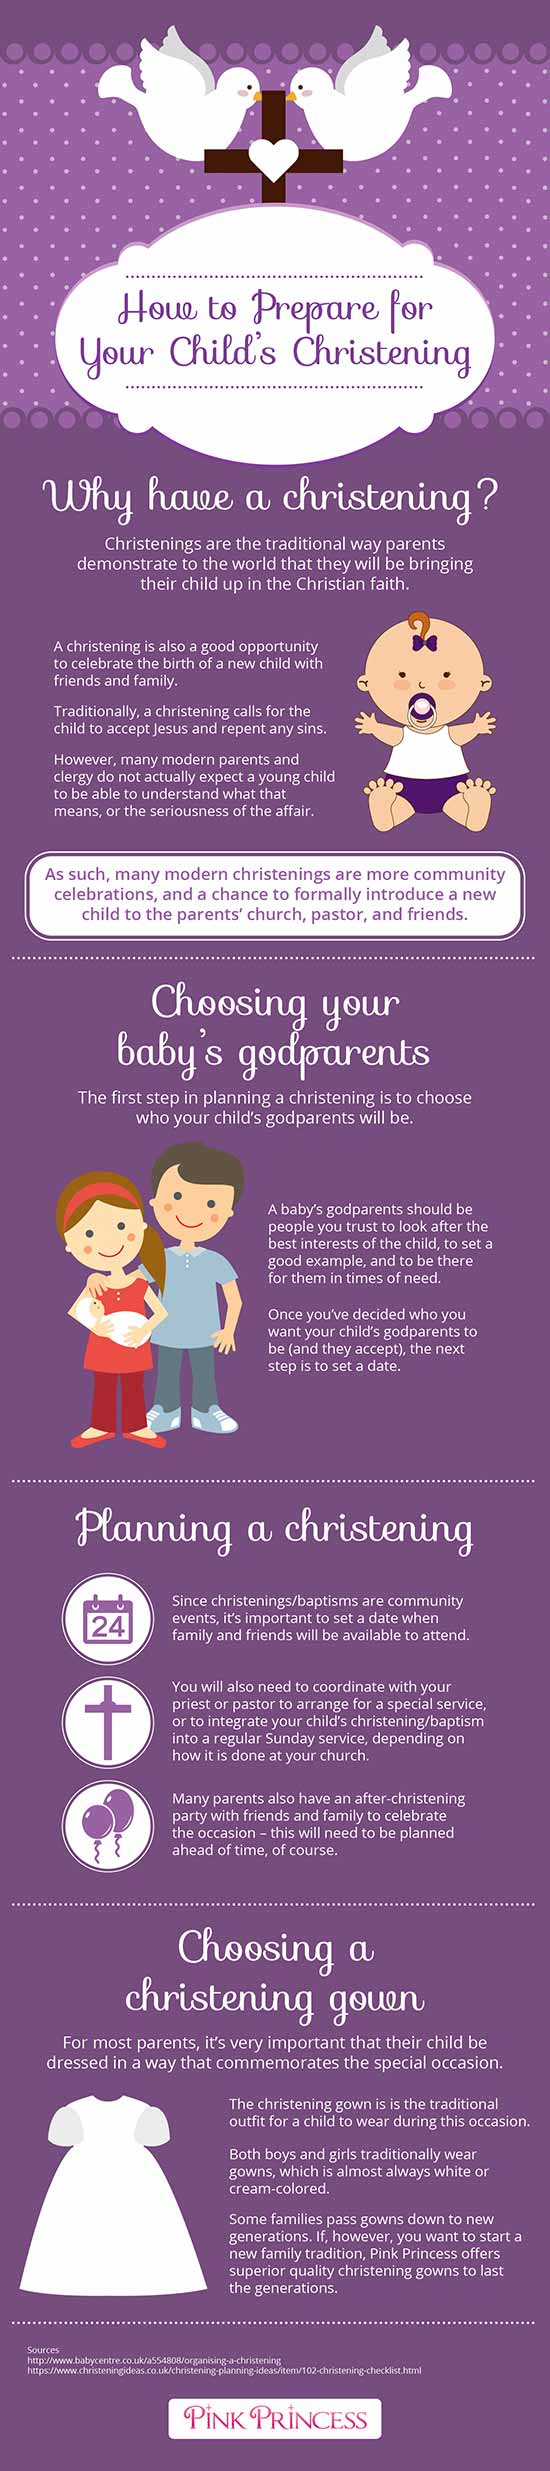 How to Prepare for Your Child's Christening